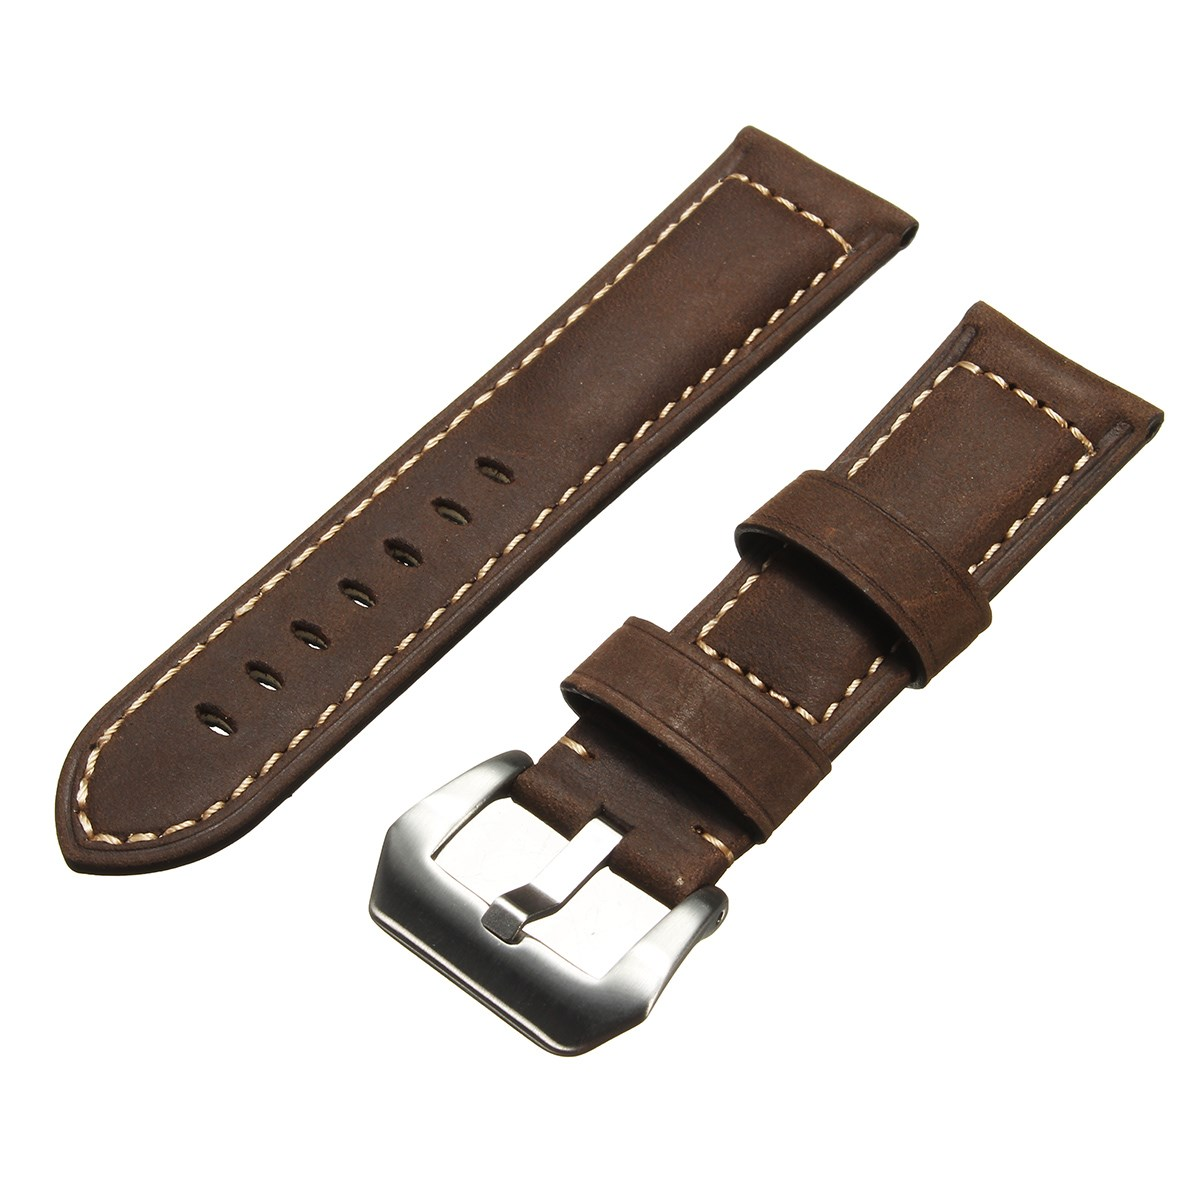 New Mens Leather Watch Strap 22 24mm Dark /Light Brown for Panerai Watch High Quality Handmade Retro Leather Strap new matte red gray blue leather watchband 22mm 24mm 26mm retro strap handmade men s watch straps for panerai